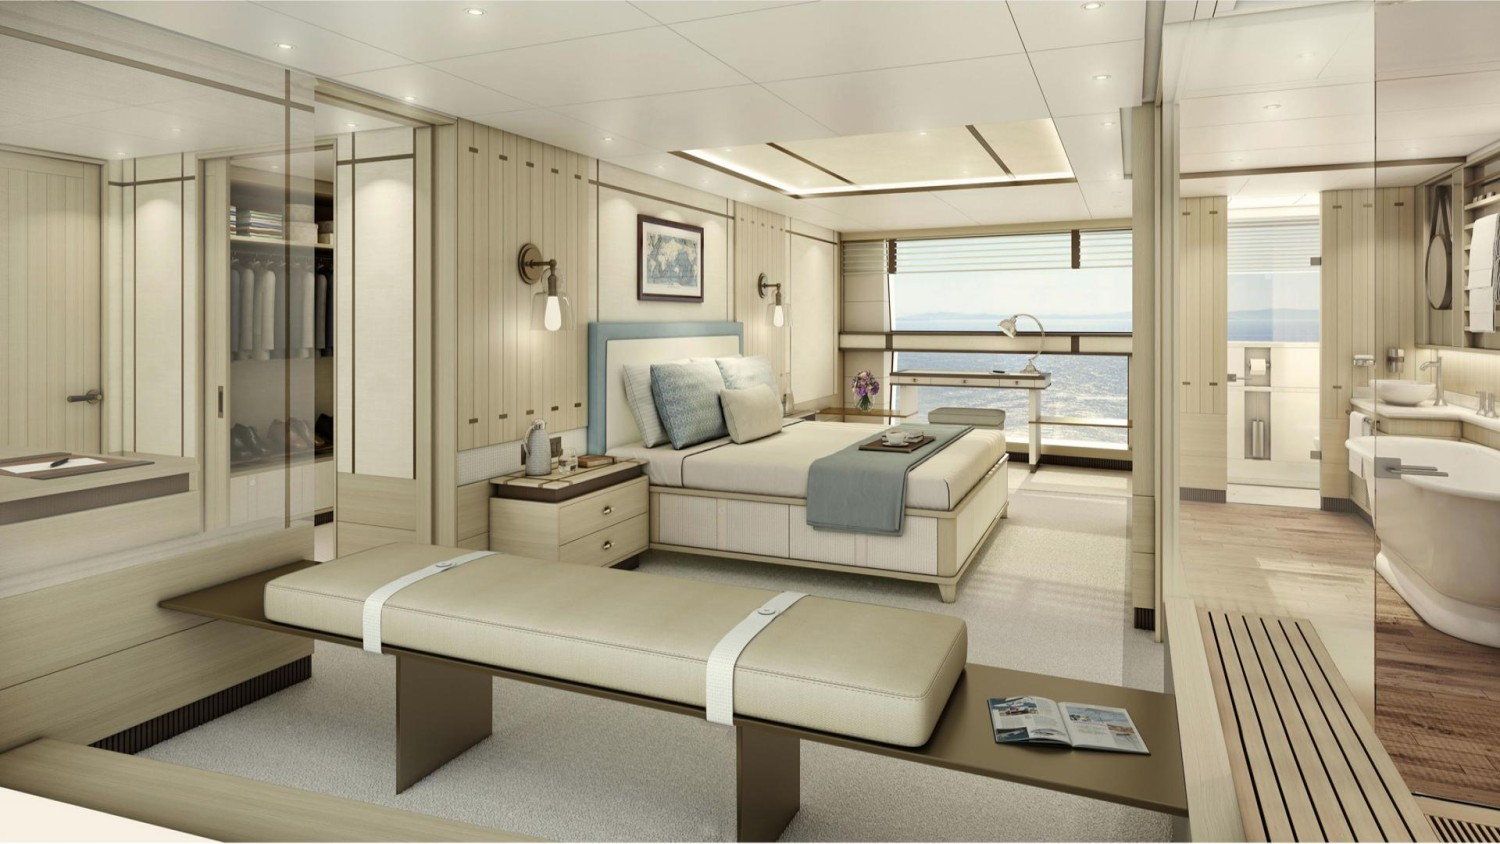 A3%20-%20Benetti%20Grande%20-%20SEA%20-%20Visual%20-%20Owners%20Cabin